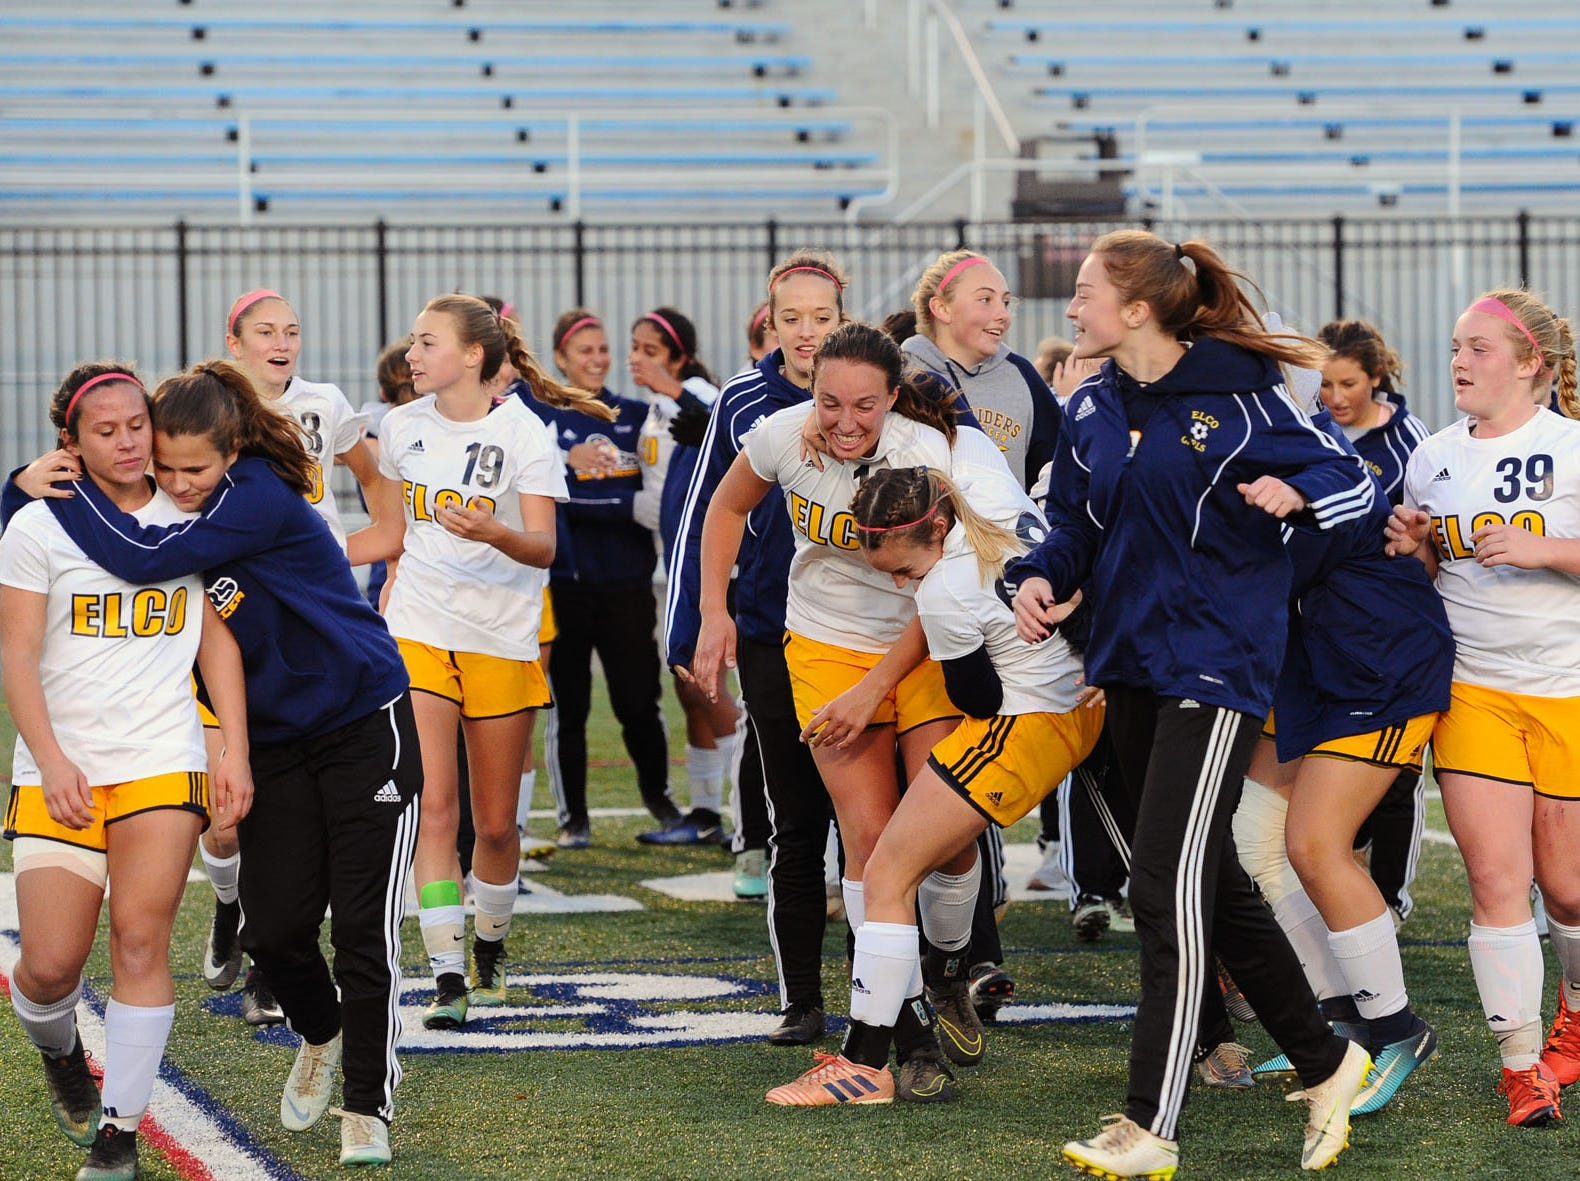 The Elco players embrace on the field after their big win over Boiling Springs in the District III 2A girls soccer championship game. Photo Jeff Ruppenthal